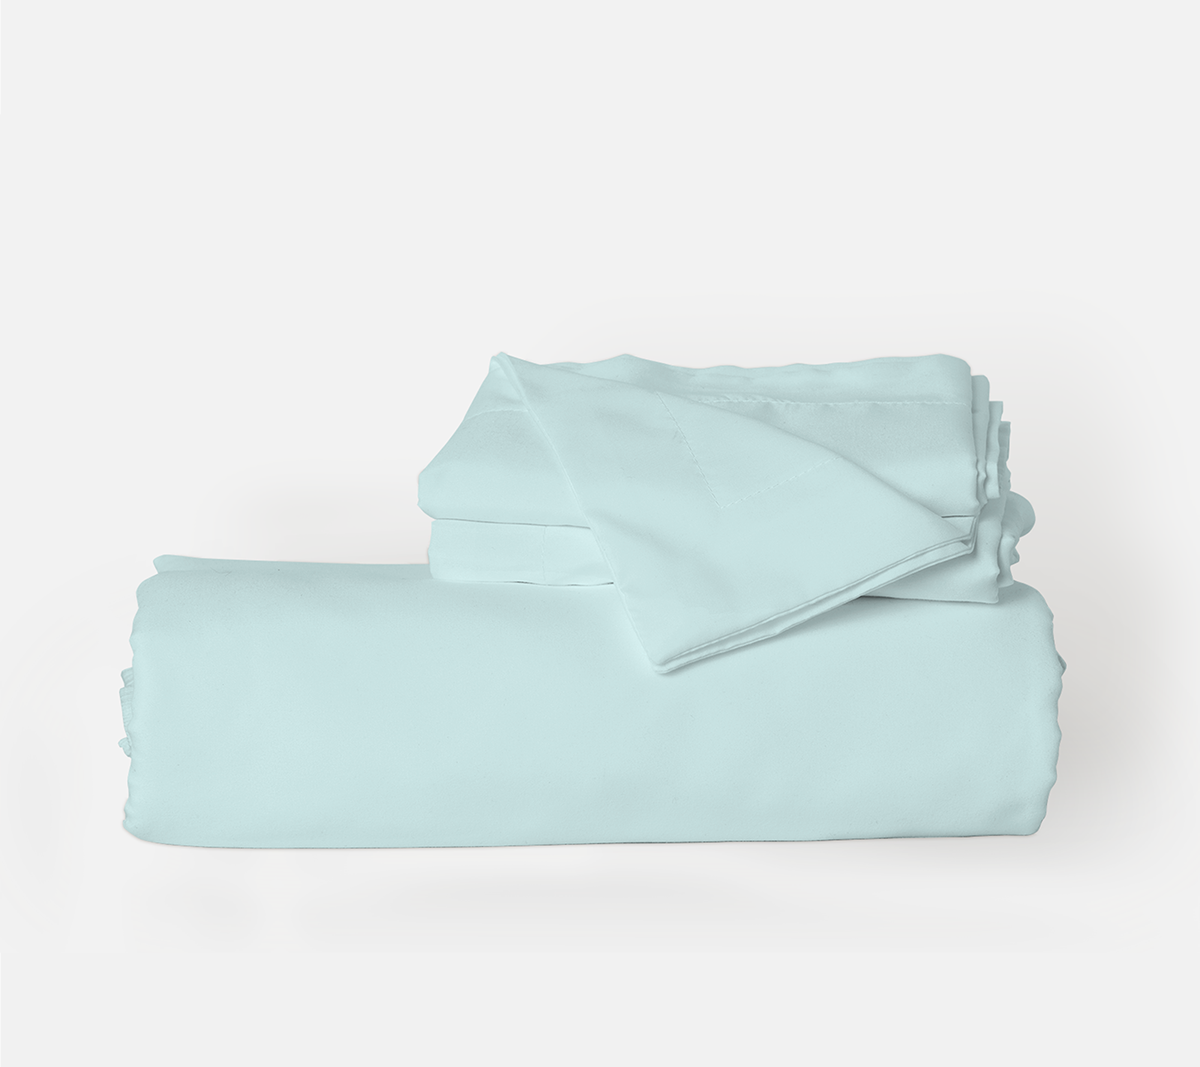 Beach Blue (Aqua) Duvet Cover Set